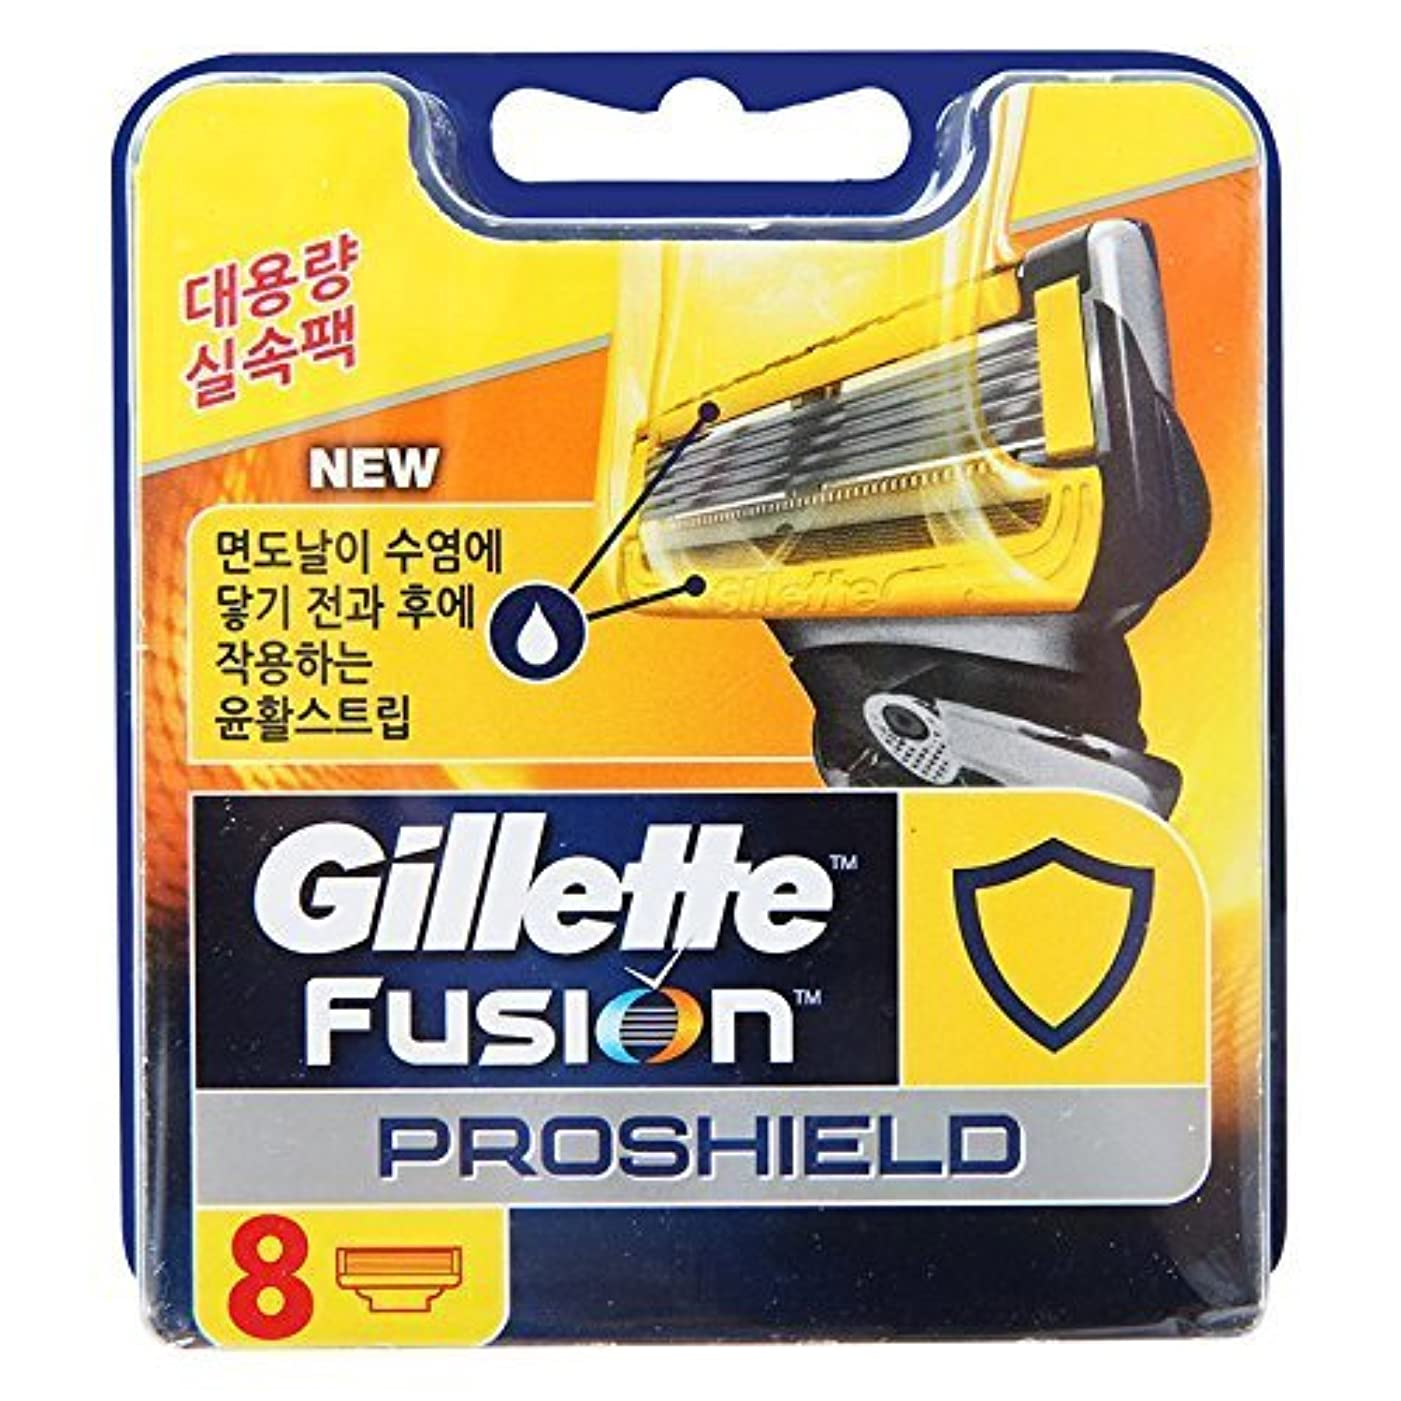 Gillette Fusion Proshield Yellow Men's Razor Blade 8 Pack / ドイツ製 [並行輸入品]